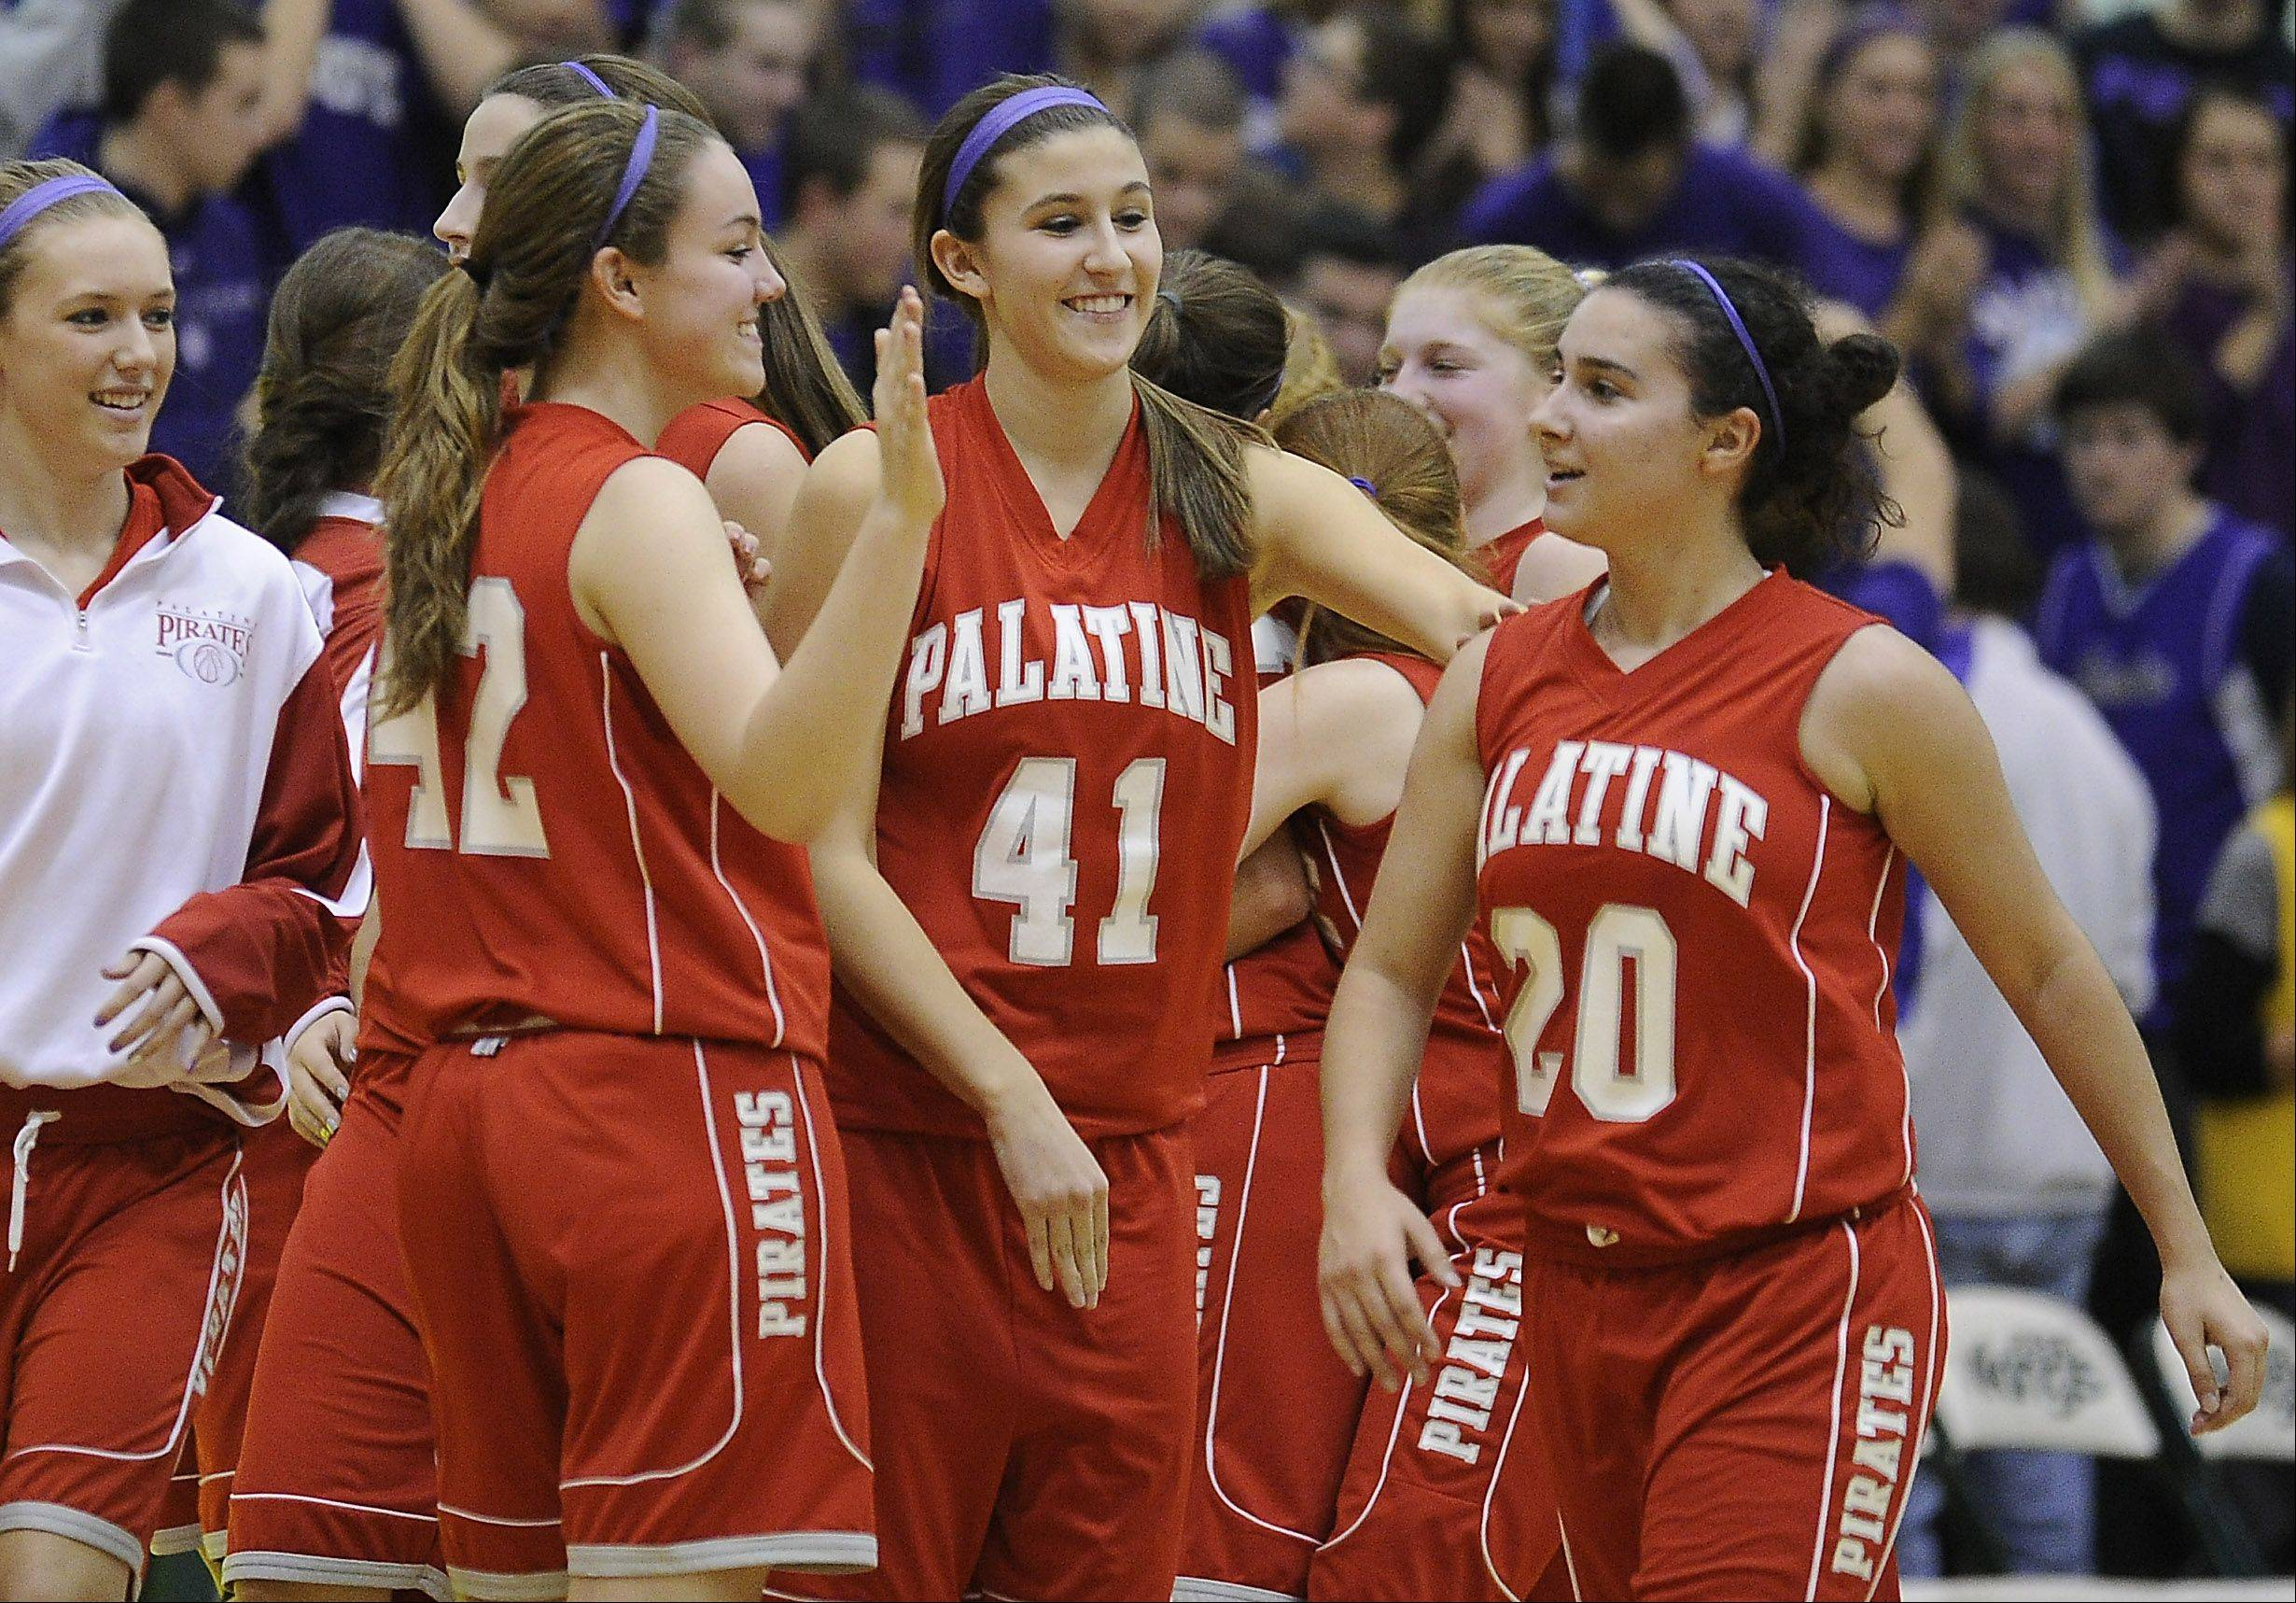 Images: Fremd vs. Palatine, girls basketball